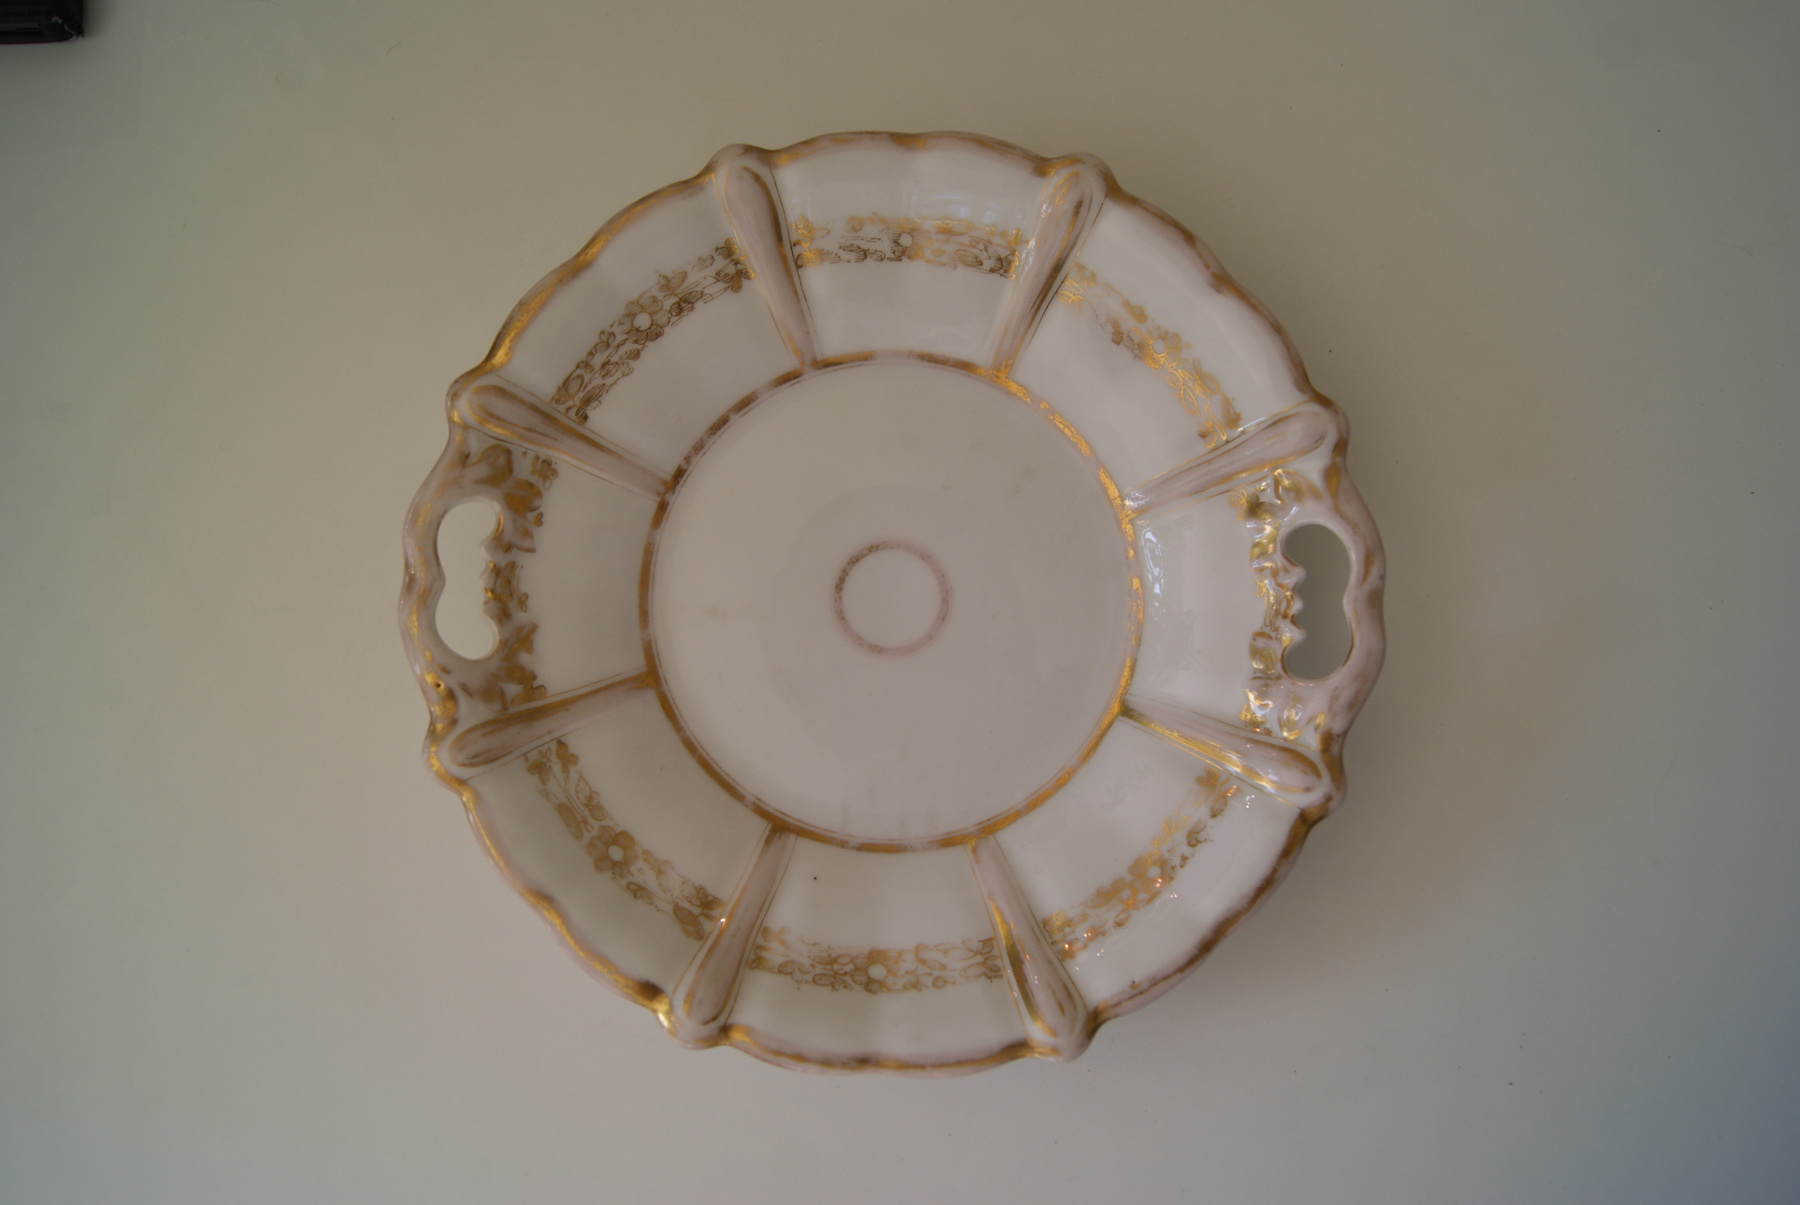 Waldenburg - Altwasser dish with golden decor